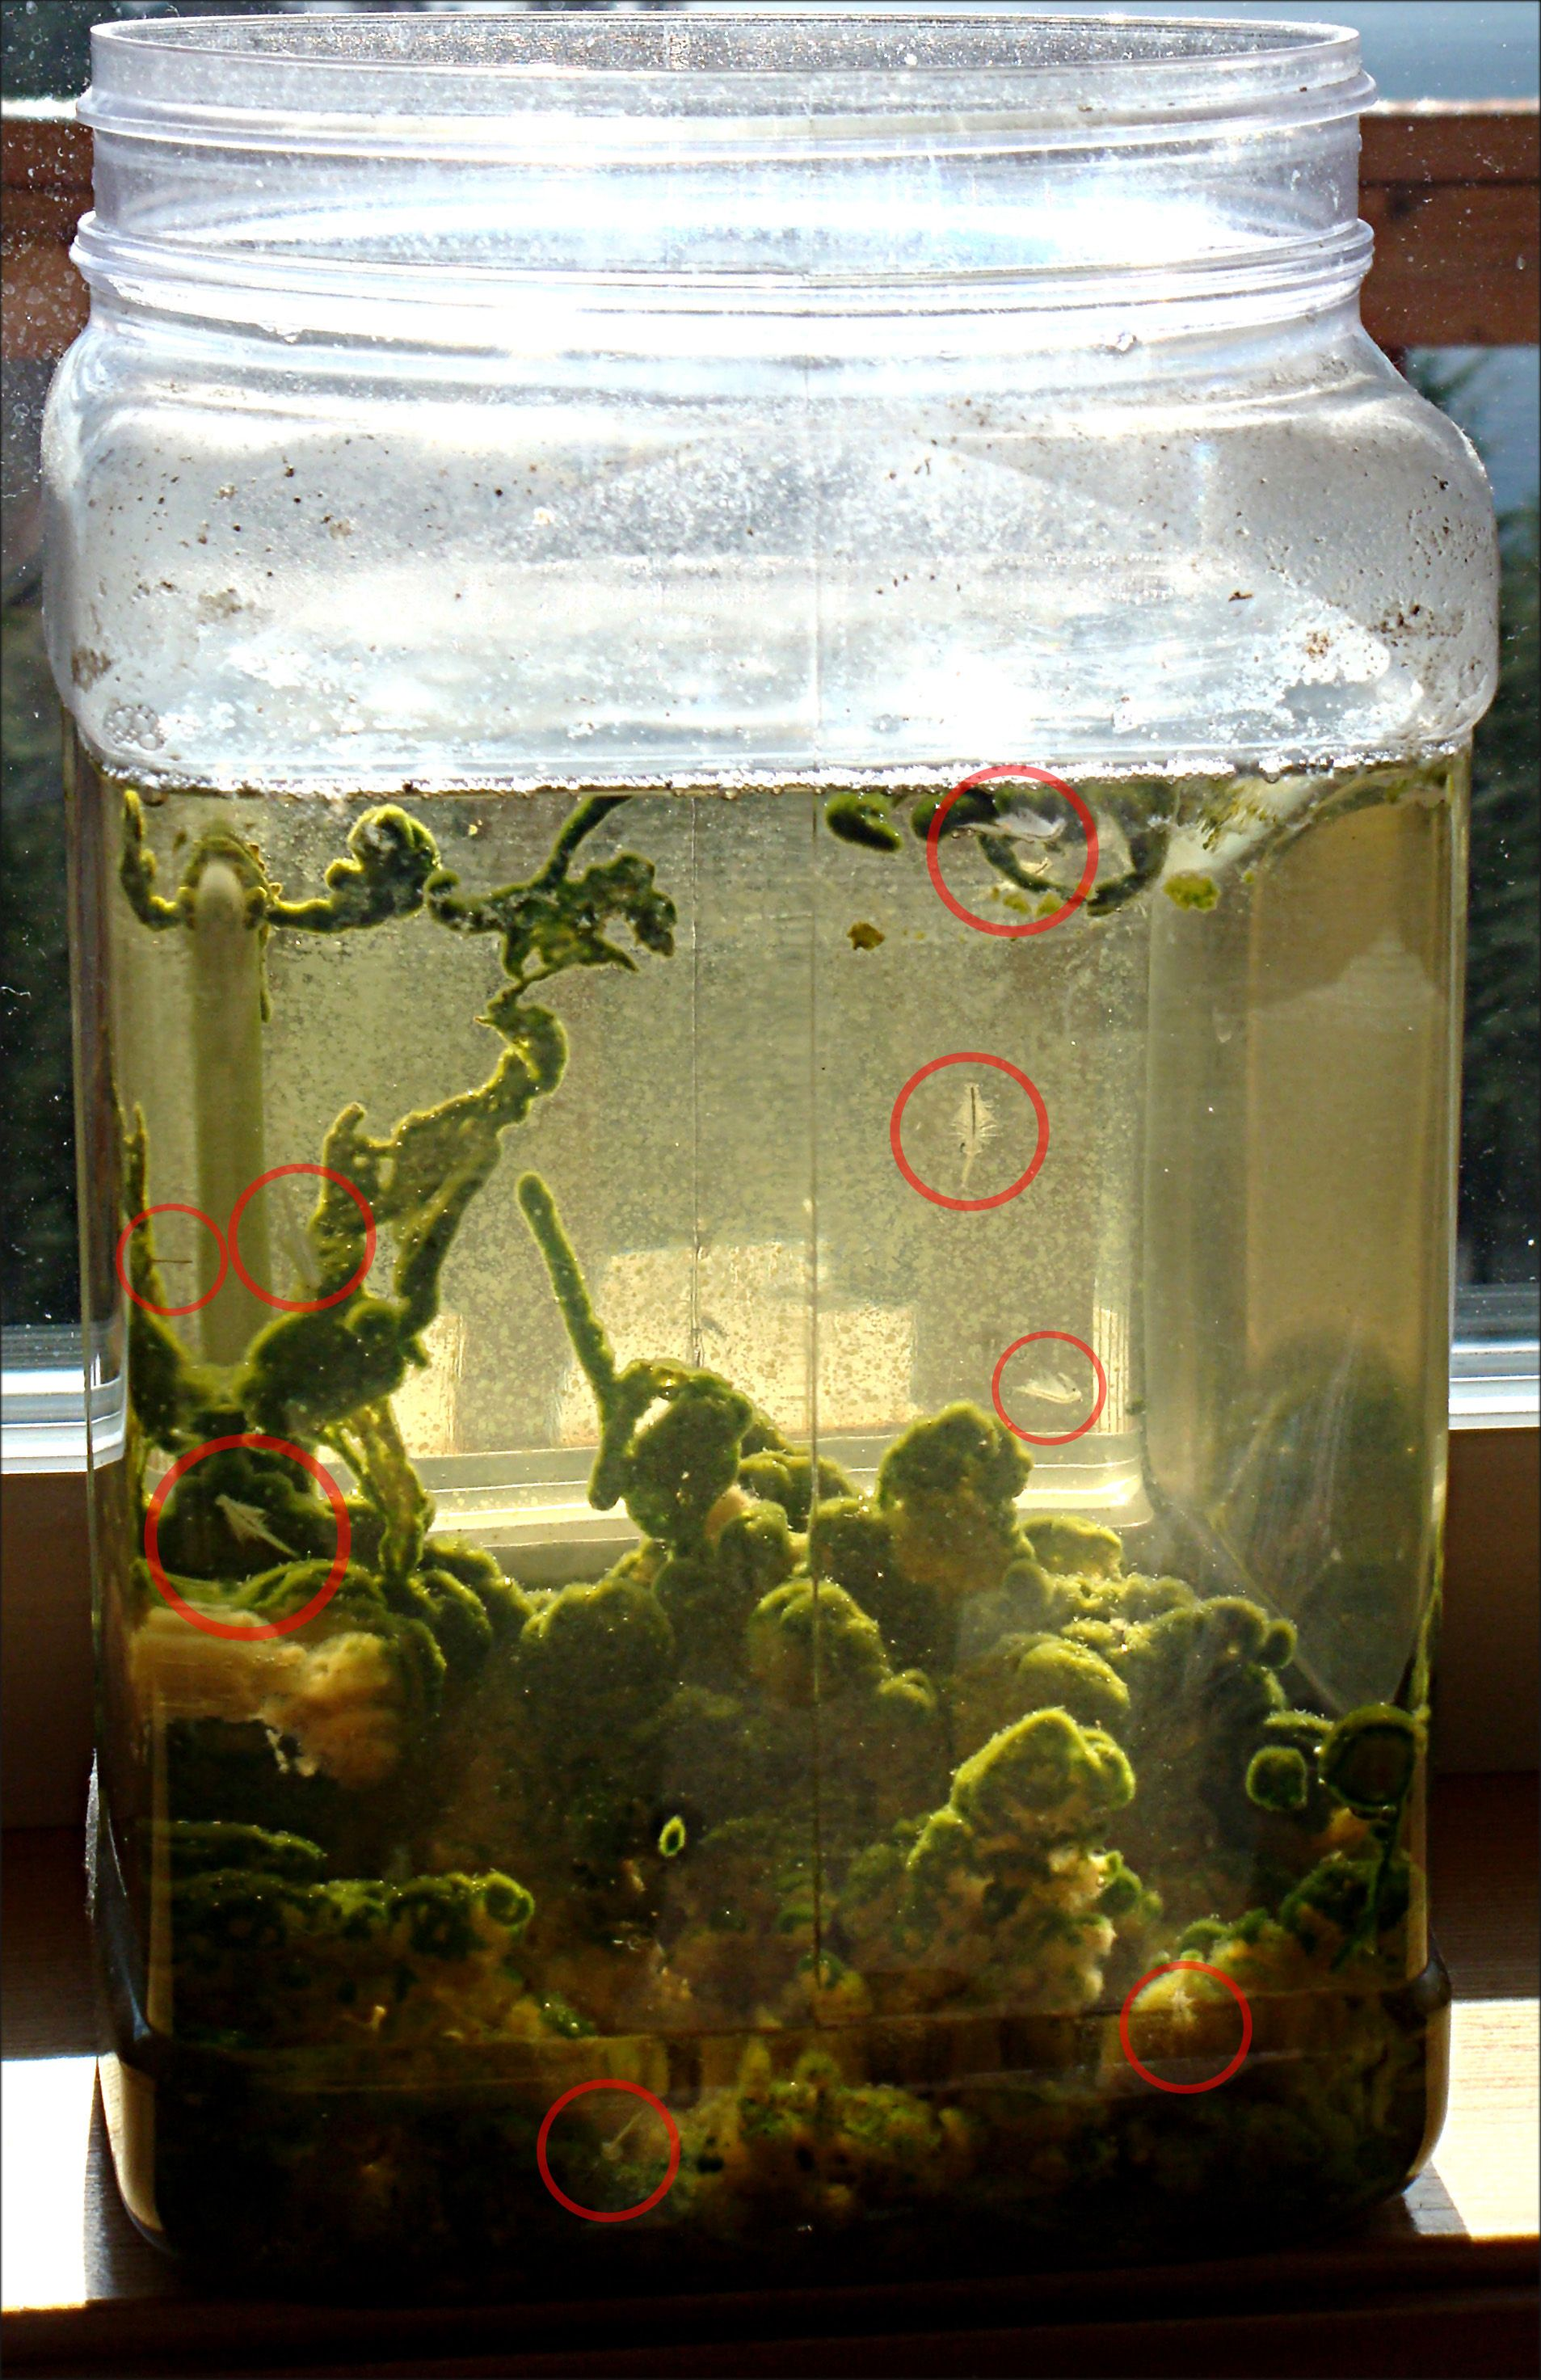 Sea Monkeys From Master Marfs Blog Note Huge Excellent Photo Of